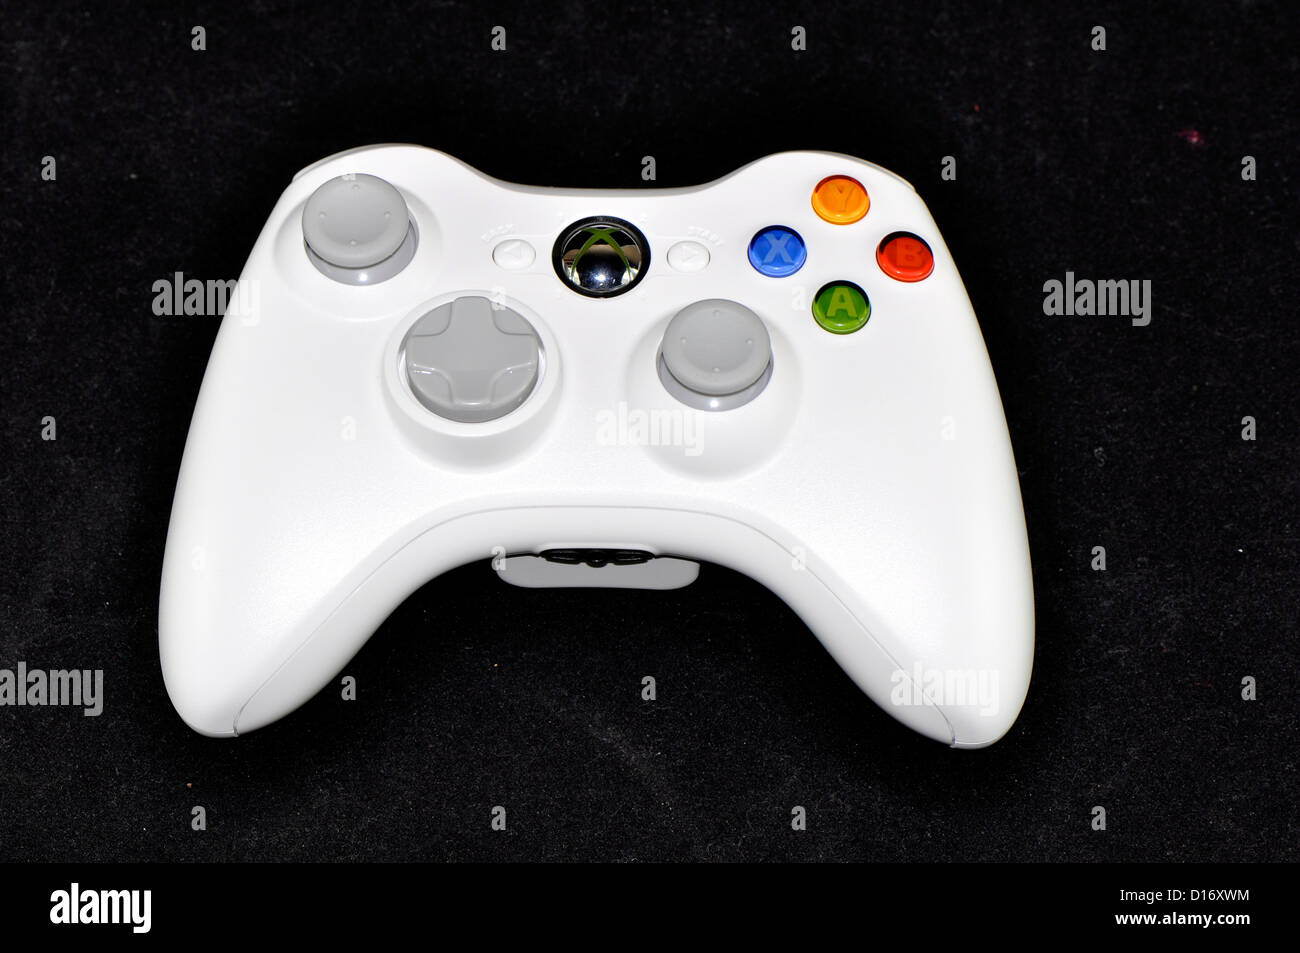 New series of Xbox 360 white set from Microsfot.  - Stock Image